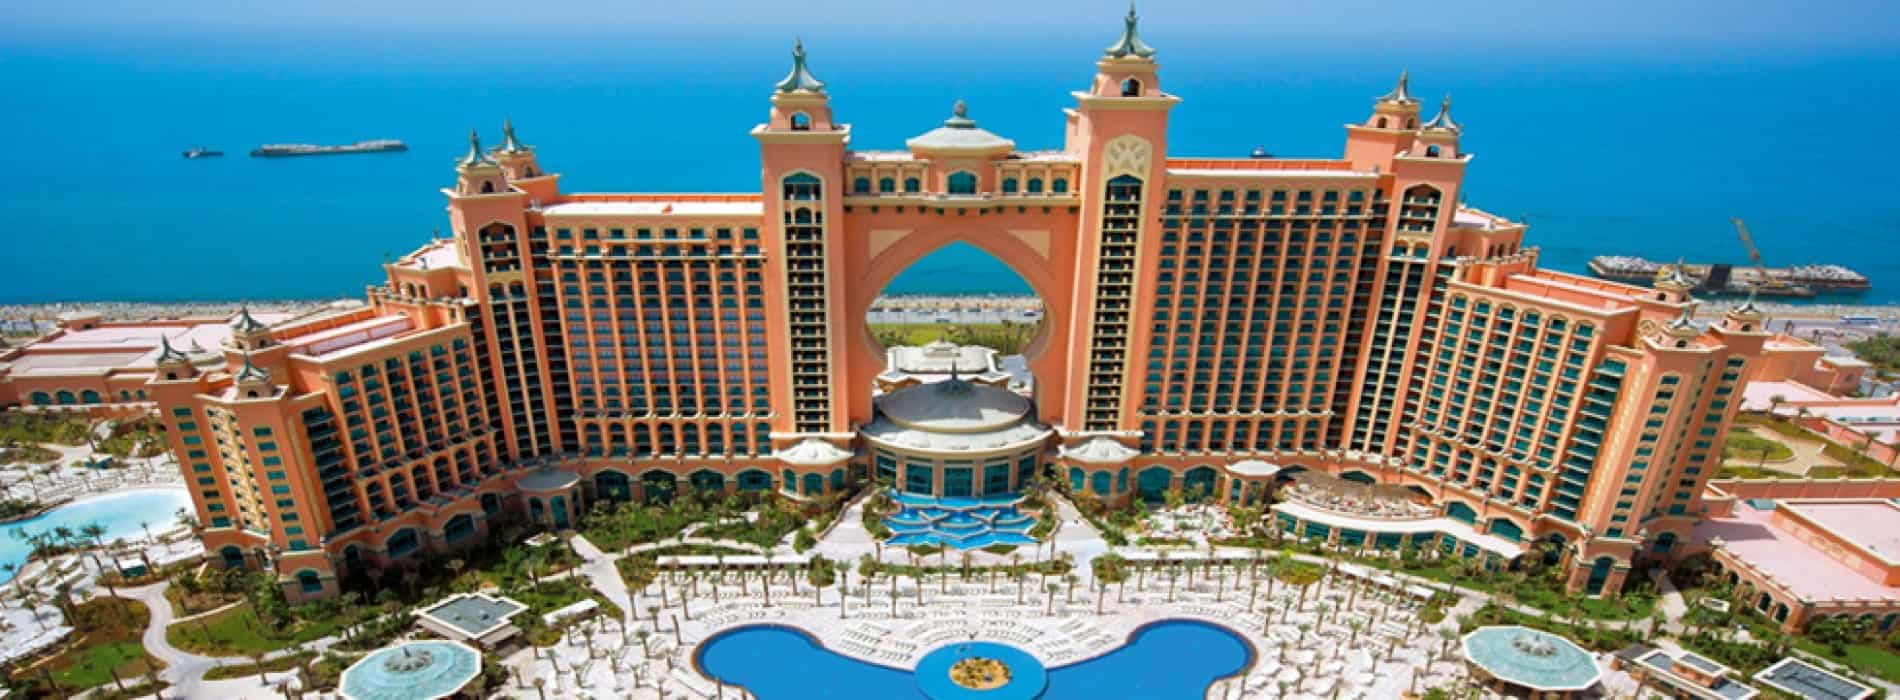 The Palm - hotel Atlantis